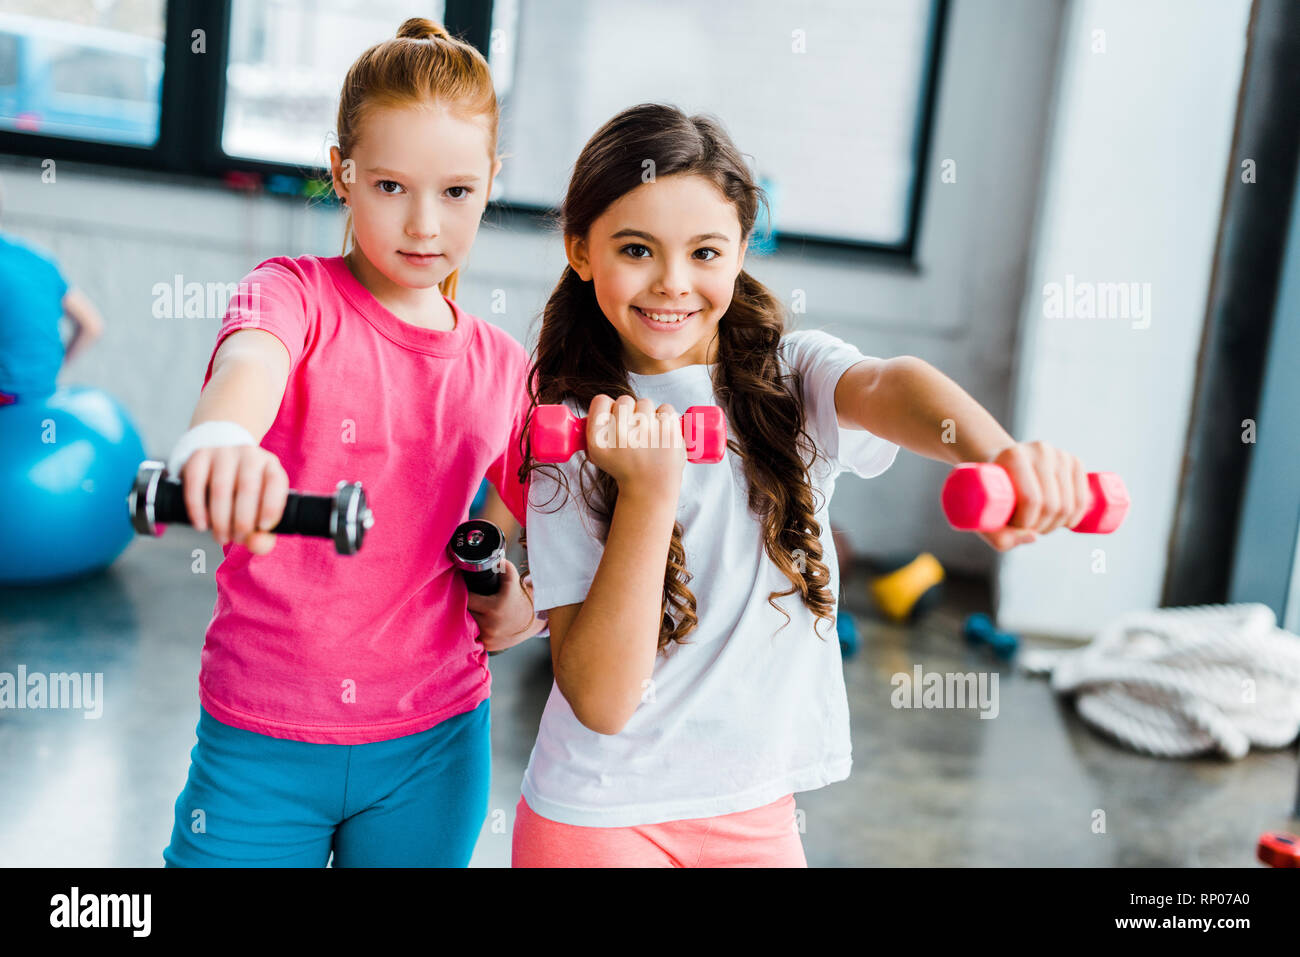 Kids Doing Exercise High Resolution Stock Photography And Images Alamy